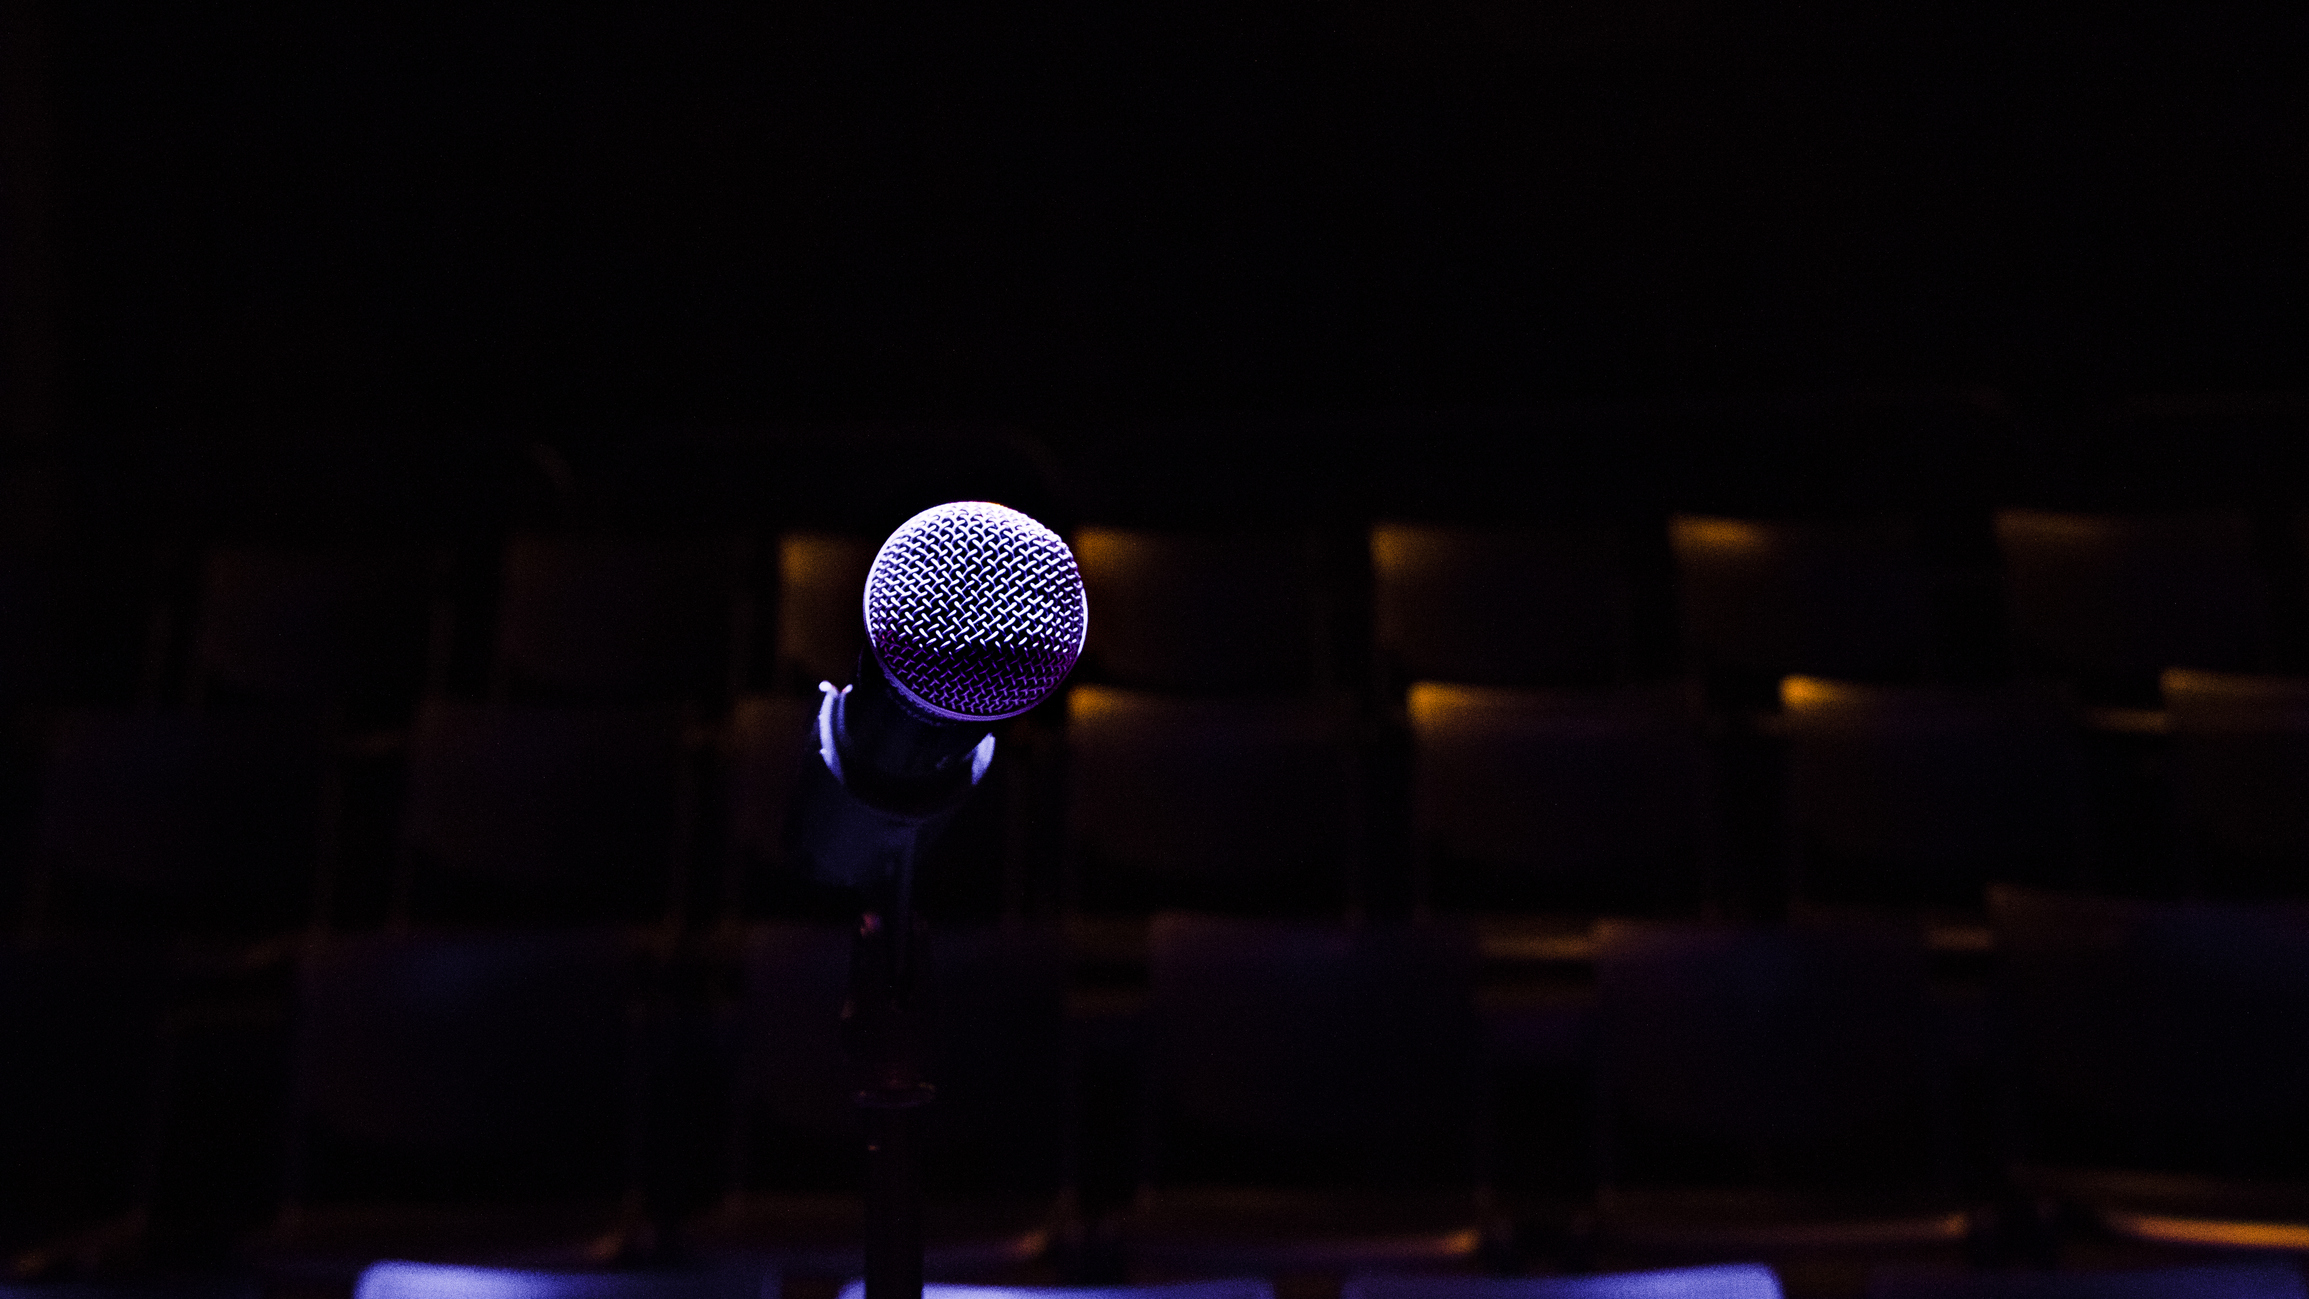 High Angle View Of Microphone On Stage